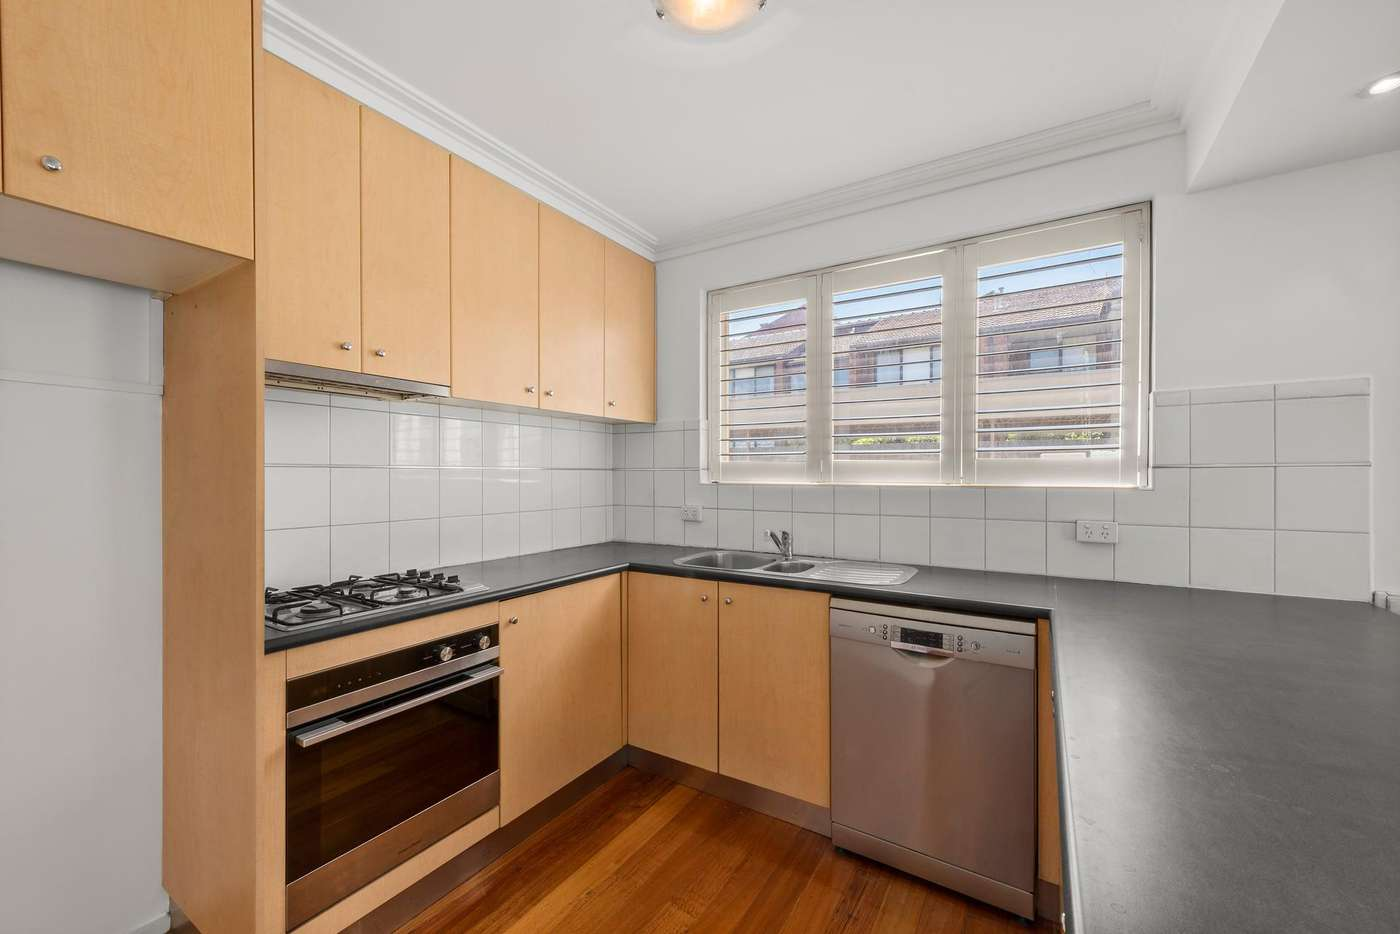 Main view of Homely apartment listing, 5/17 Masters Street, Caulfield VIC 3162